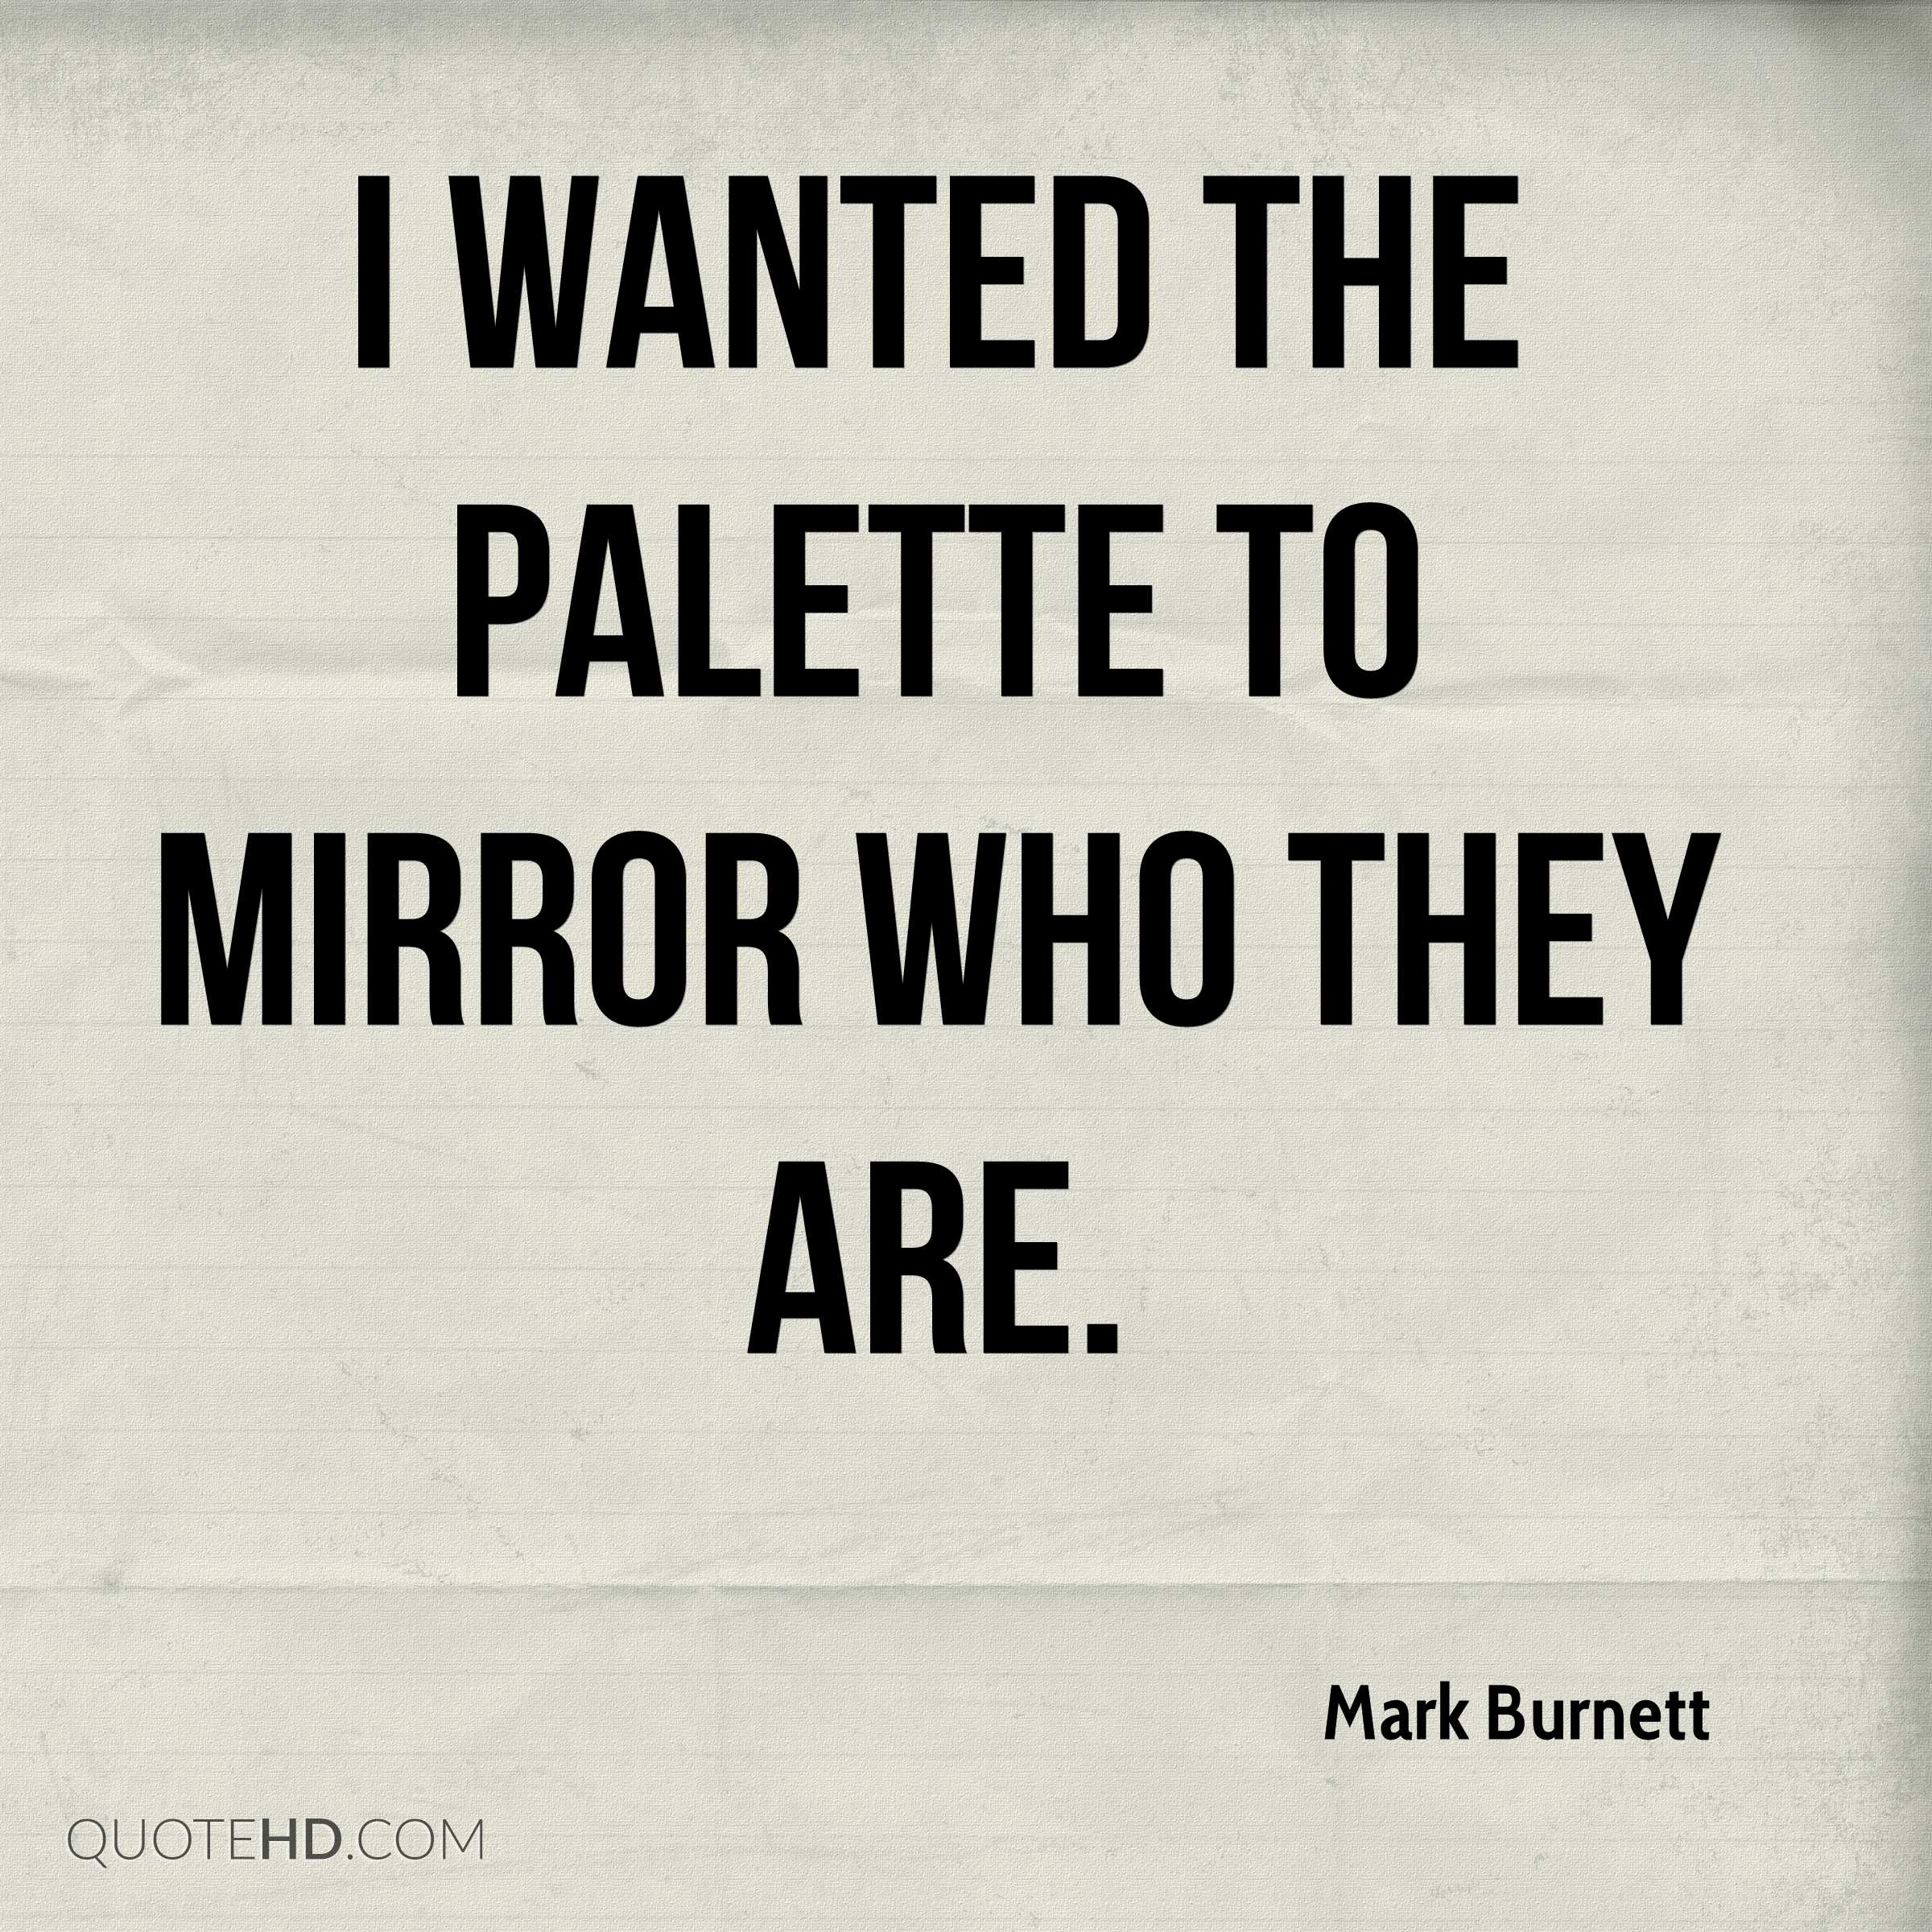 I wanted the palette to mirror who they are.